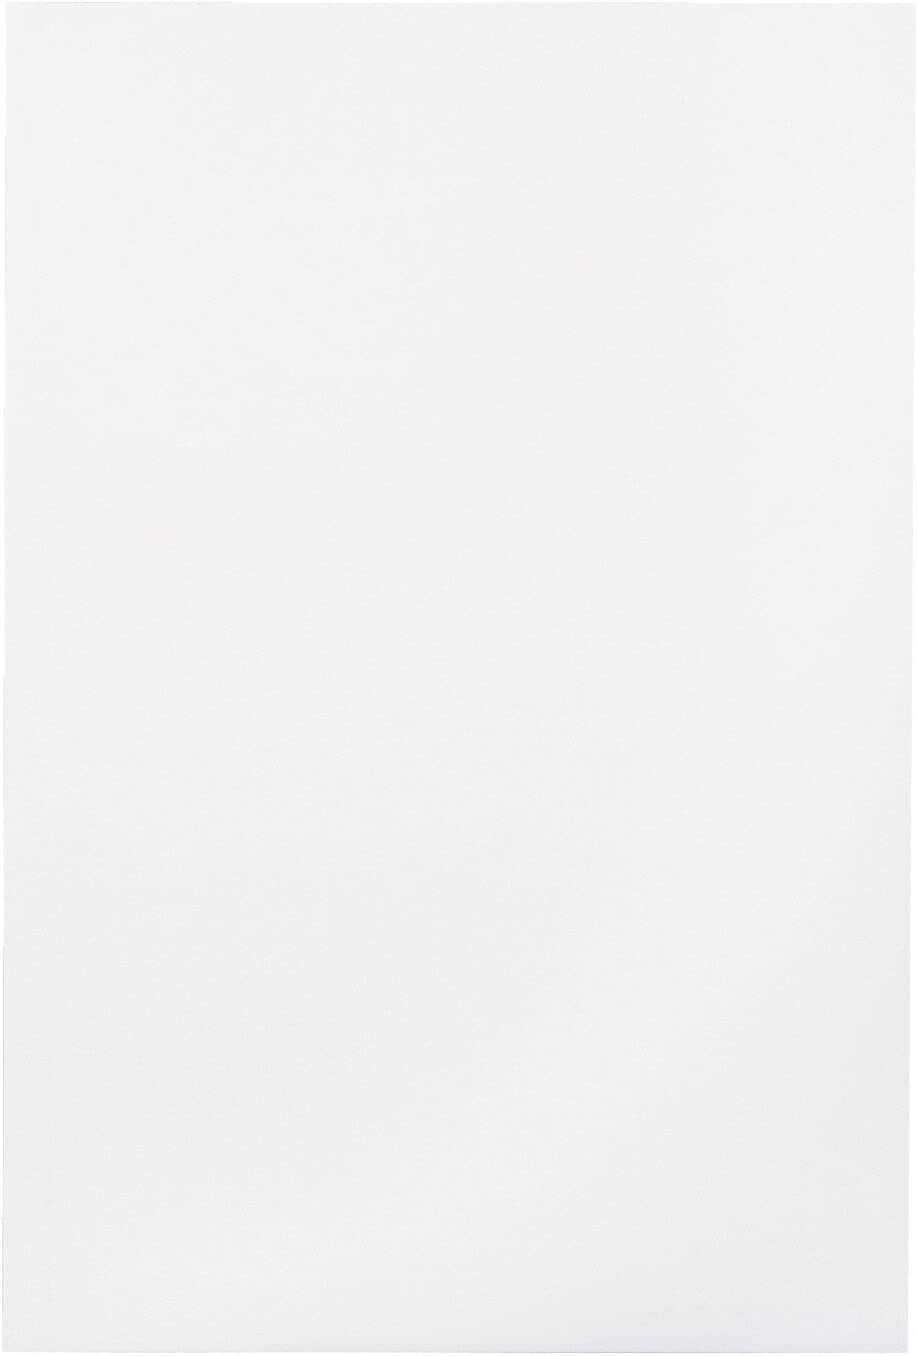 White School Smart Folding Bristol Tagboard 9 x 12 Inches Pack of 100-085520